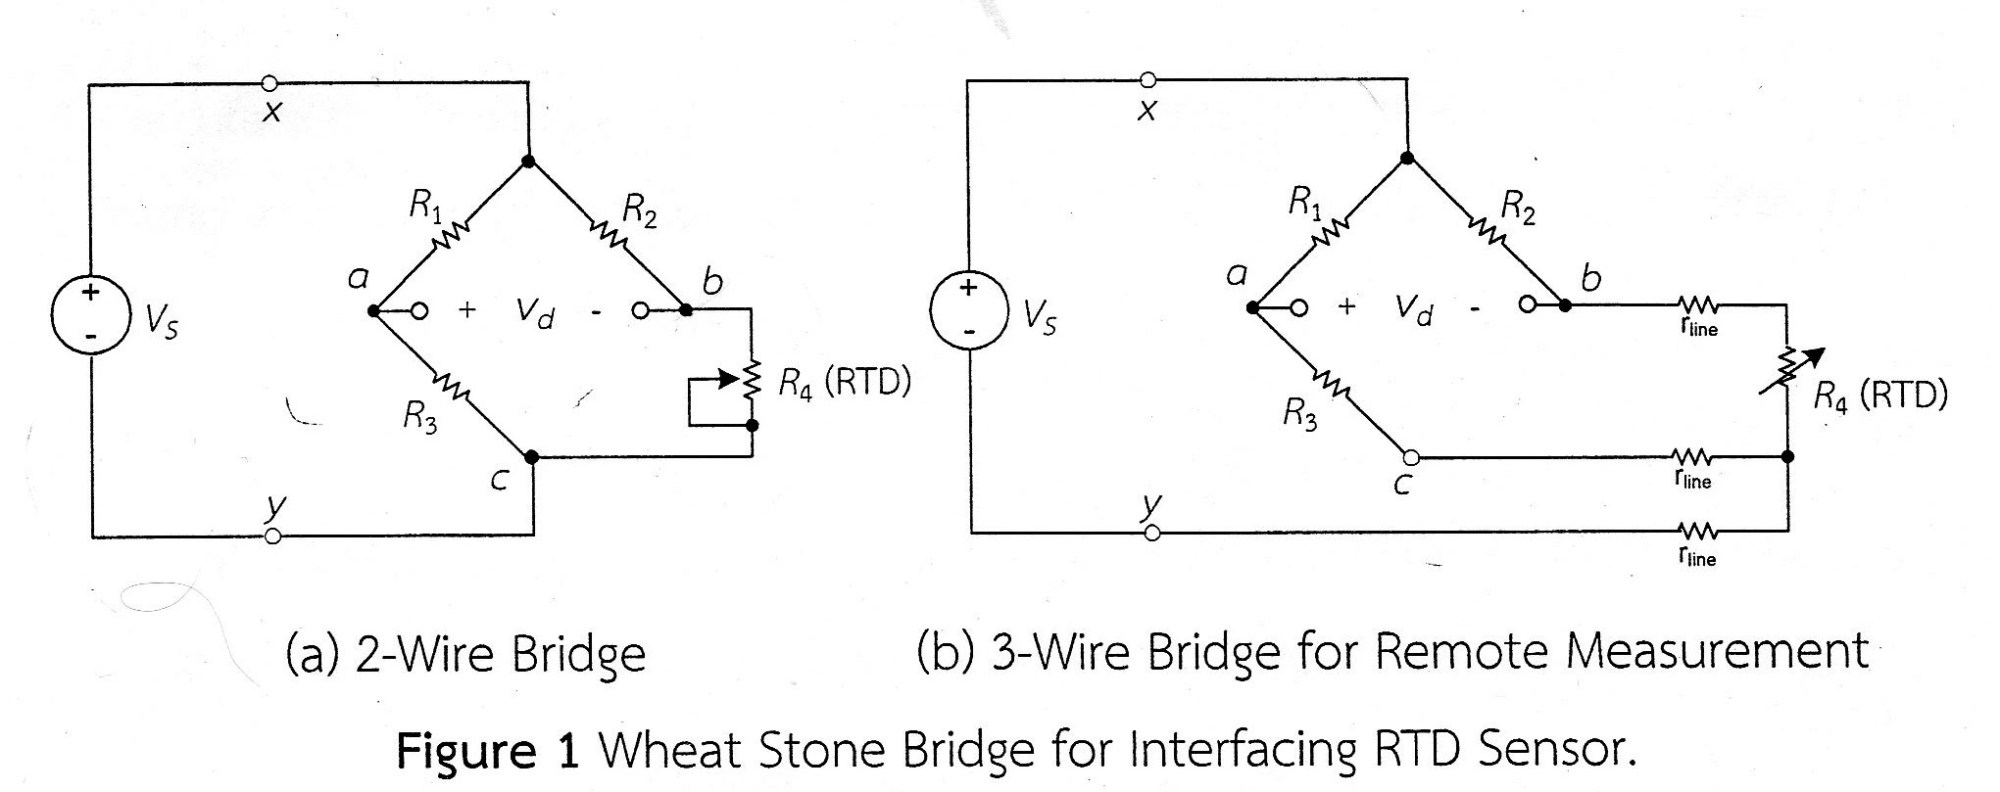 hight resolution of labiv op amp signal conditioning circuit for 3 wire rtd bridge